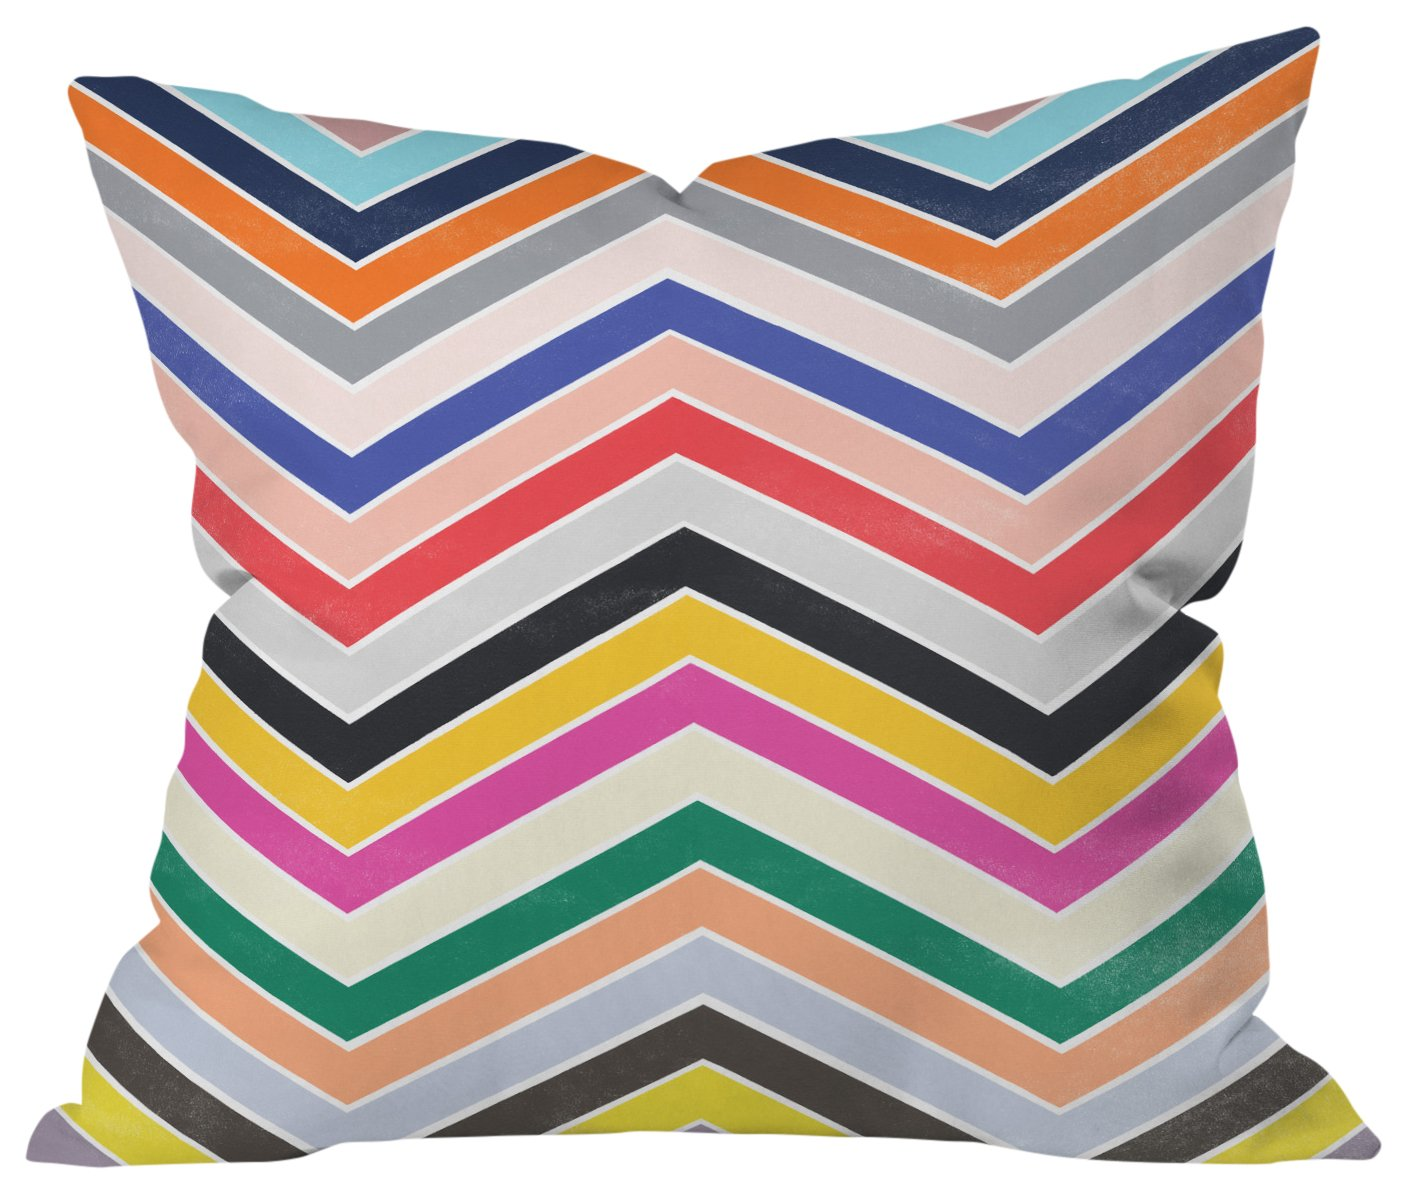 16 X 16 Deny Designs Garima Dhawan Mindscape 5 Outdoor Throw Pillow Throw Pillows Decorative Pillows Inserts Covers